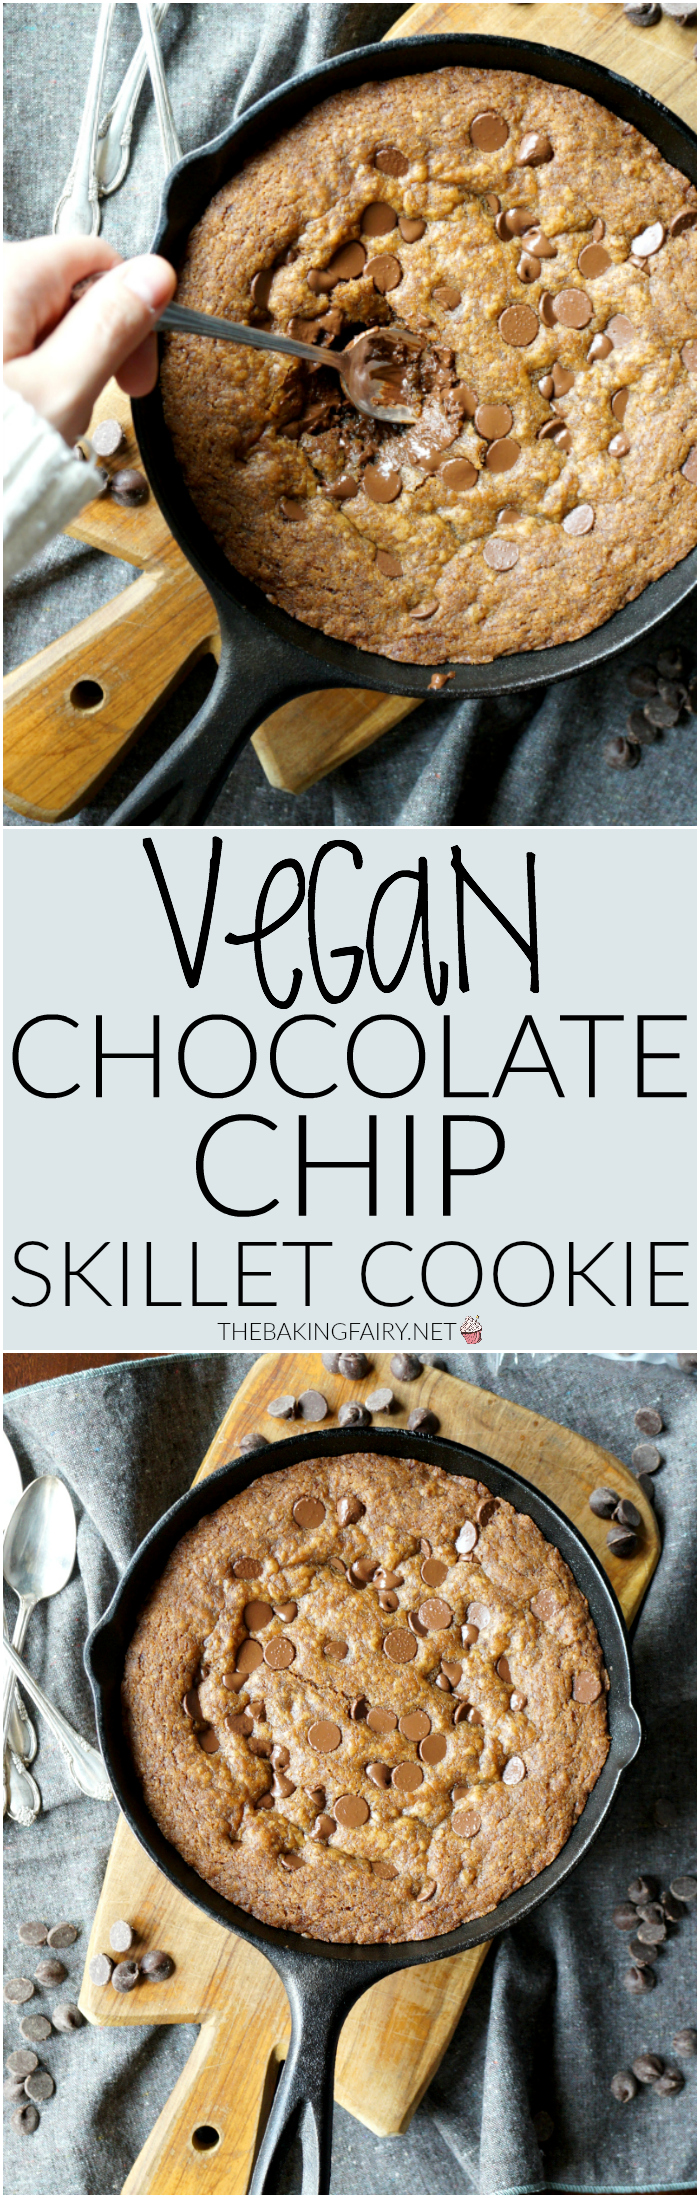 vegan chocolate chip skillet cookie | The Baking Fairy